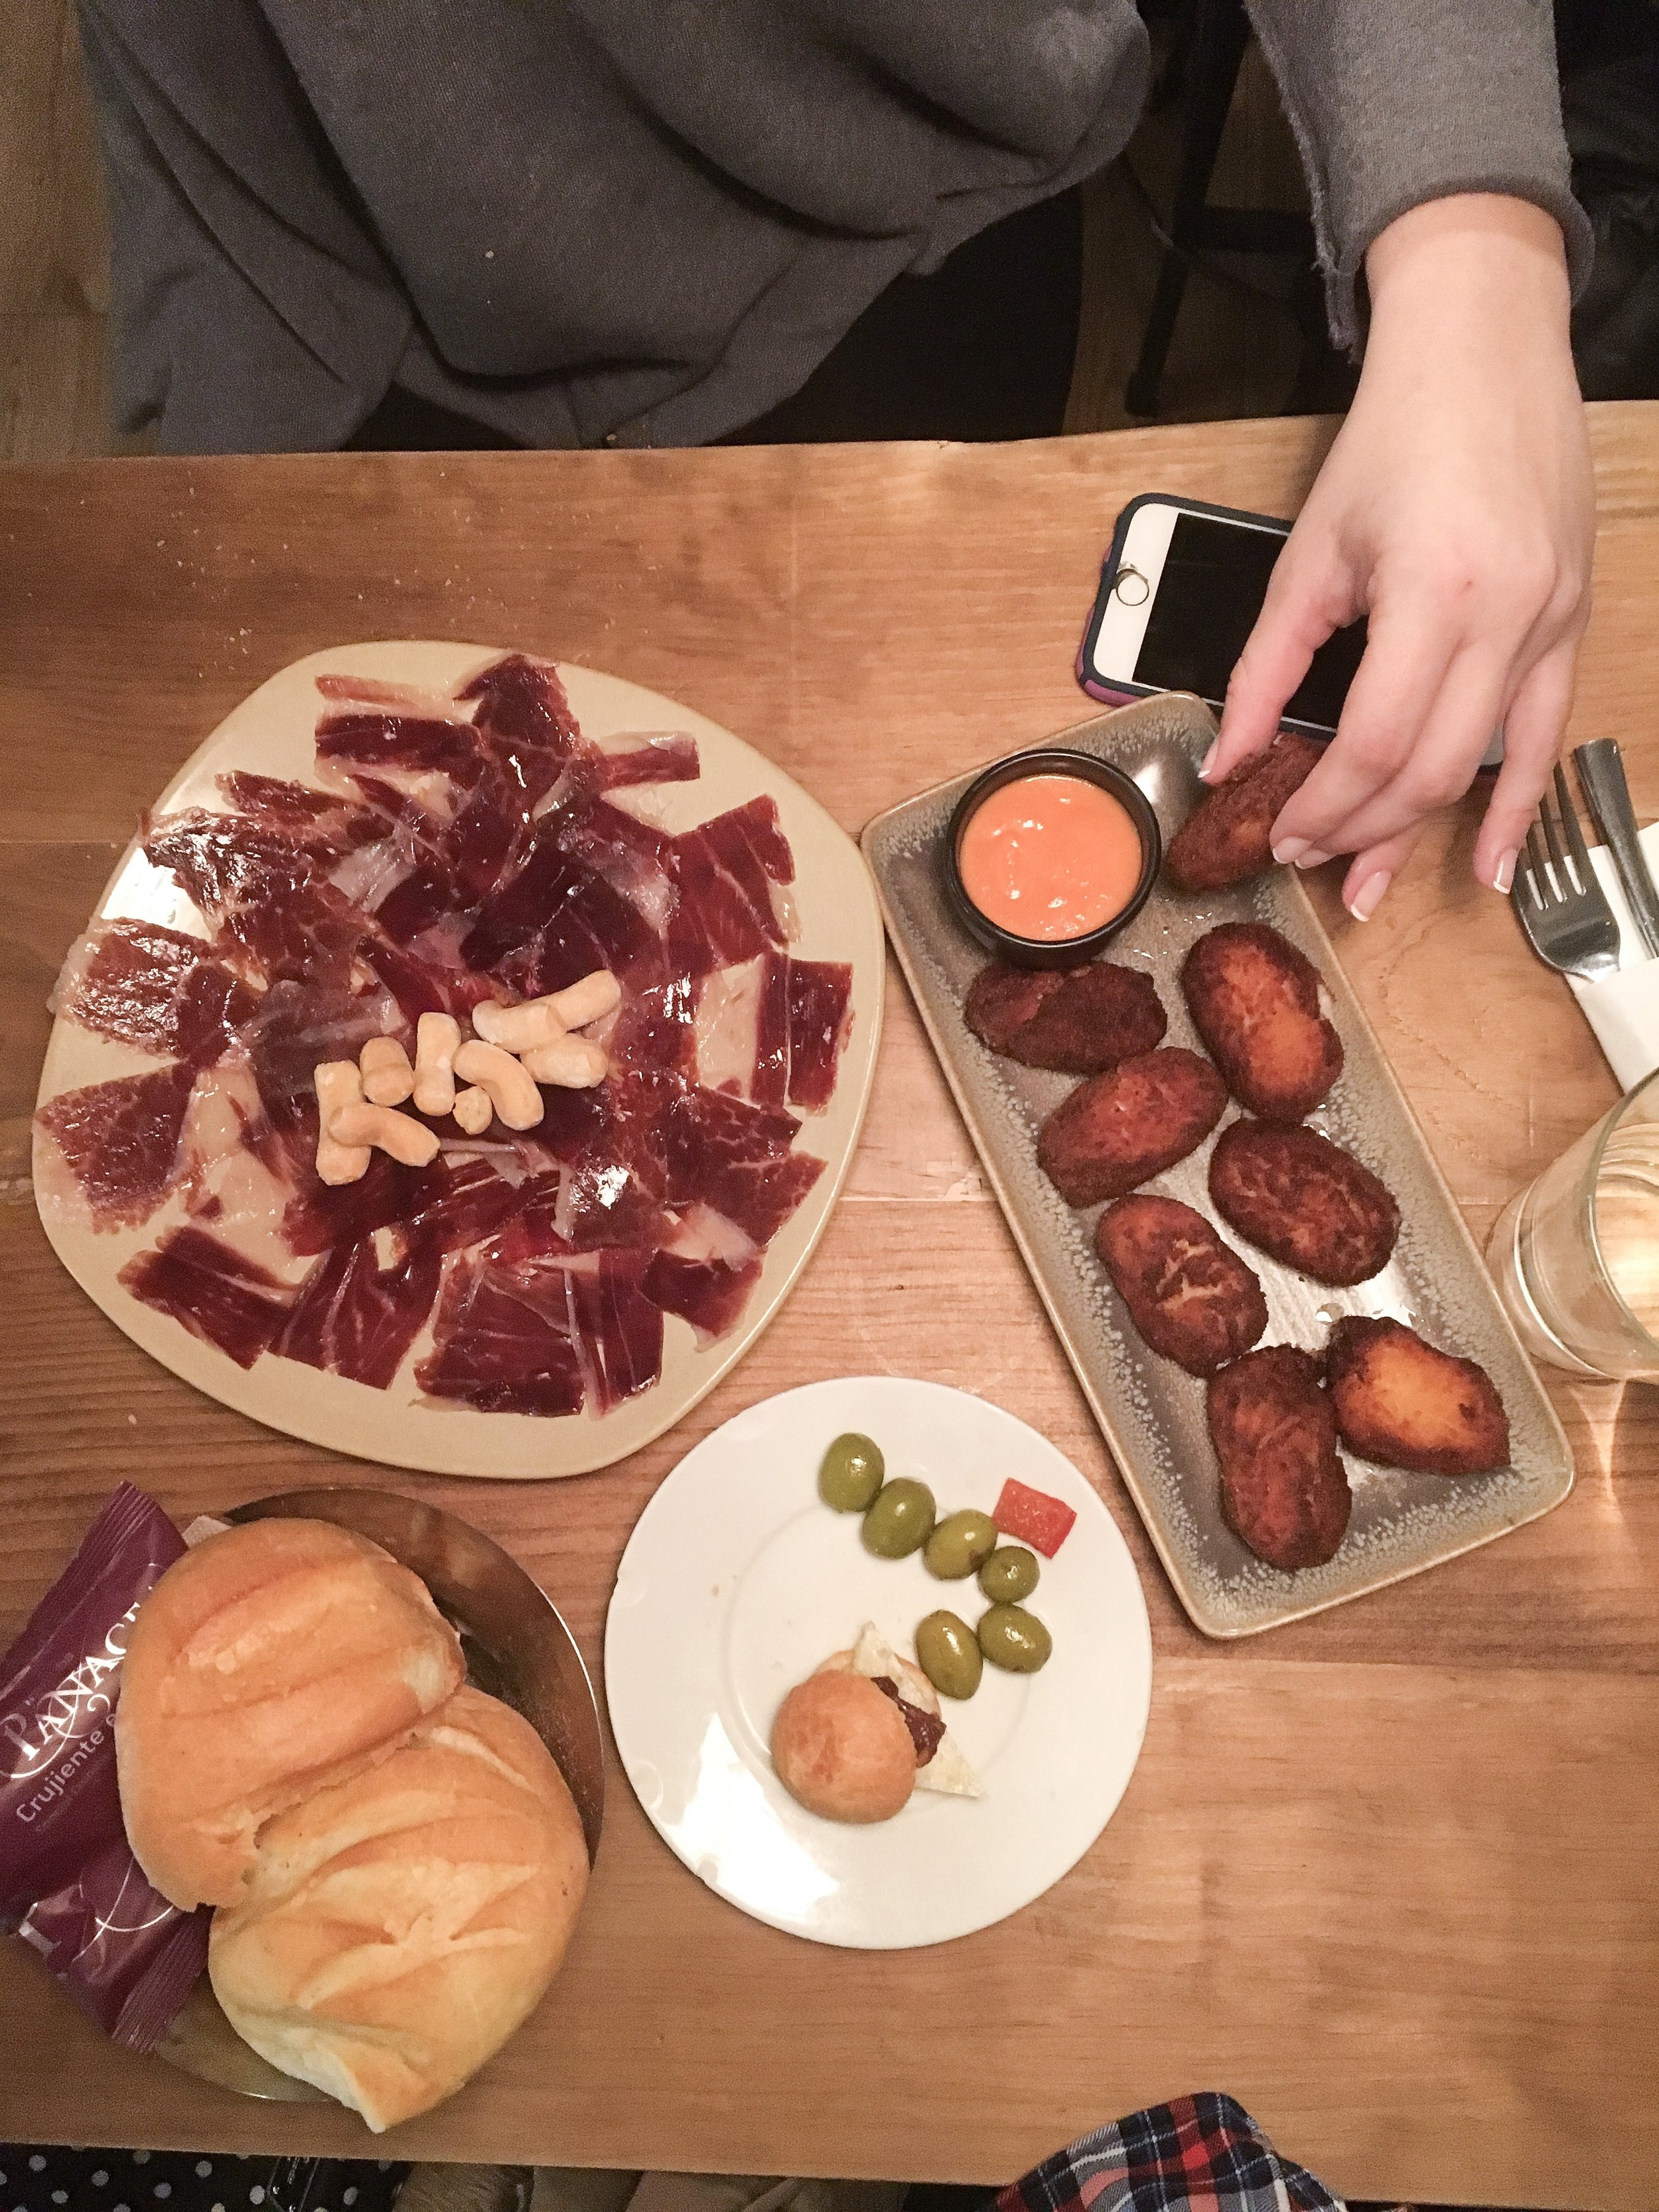 It took nearly 40 minutes for our tapas to come out at this tapas bar by my apartment